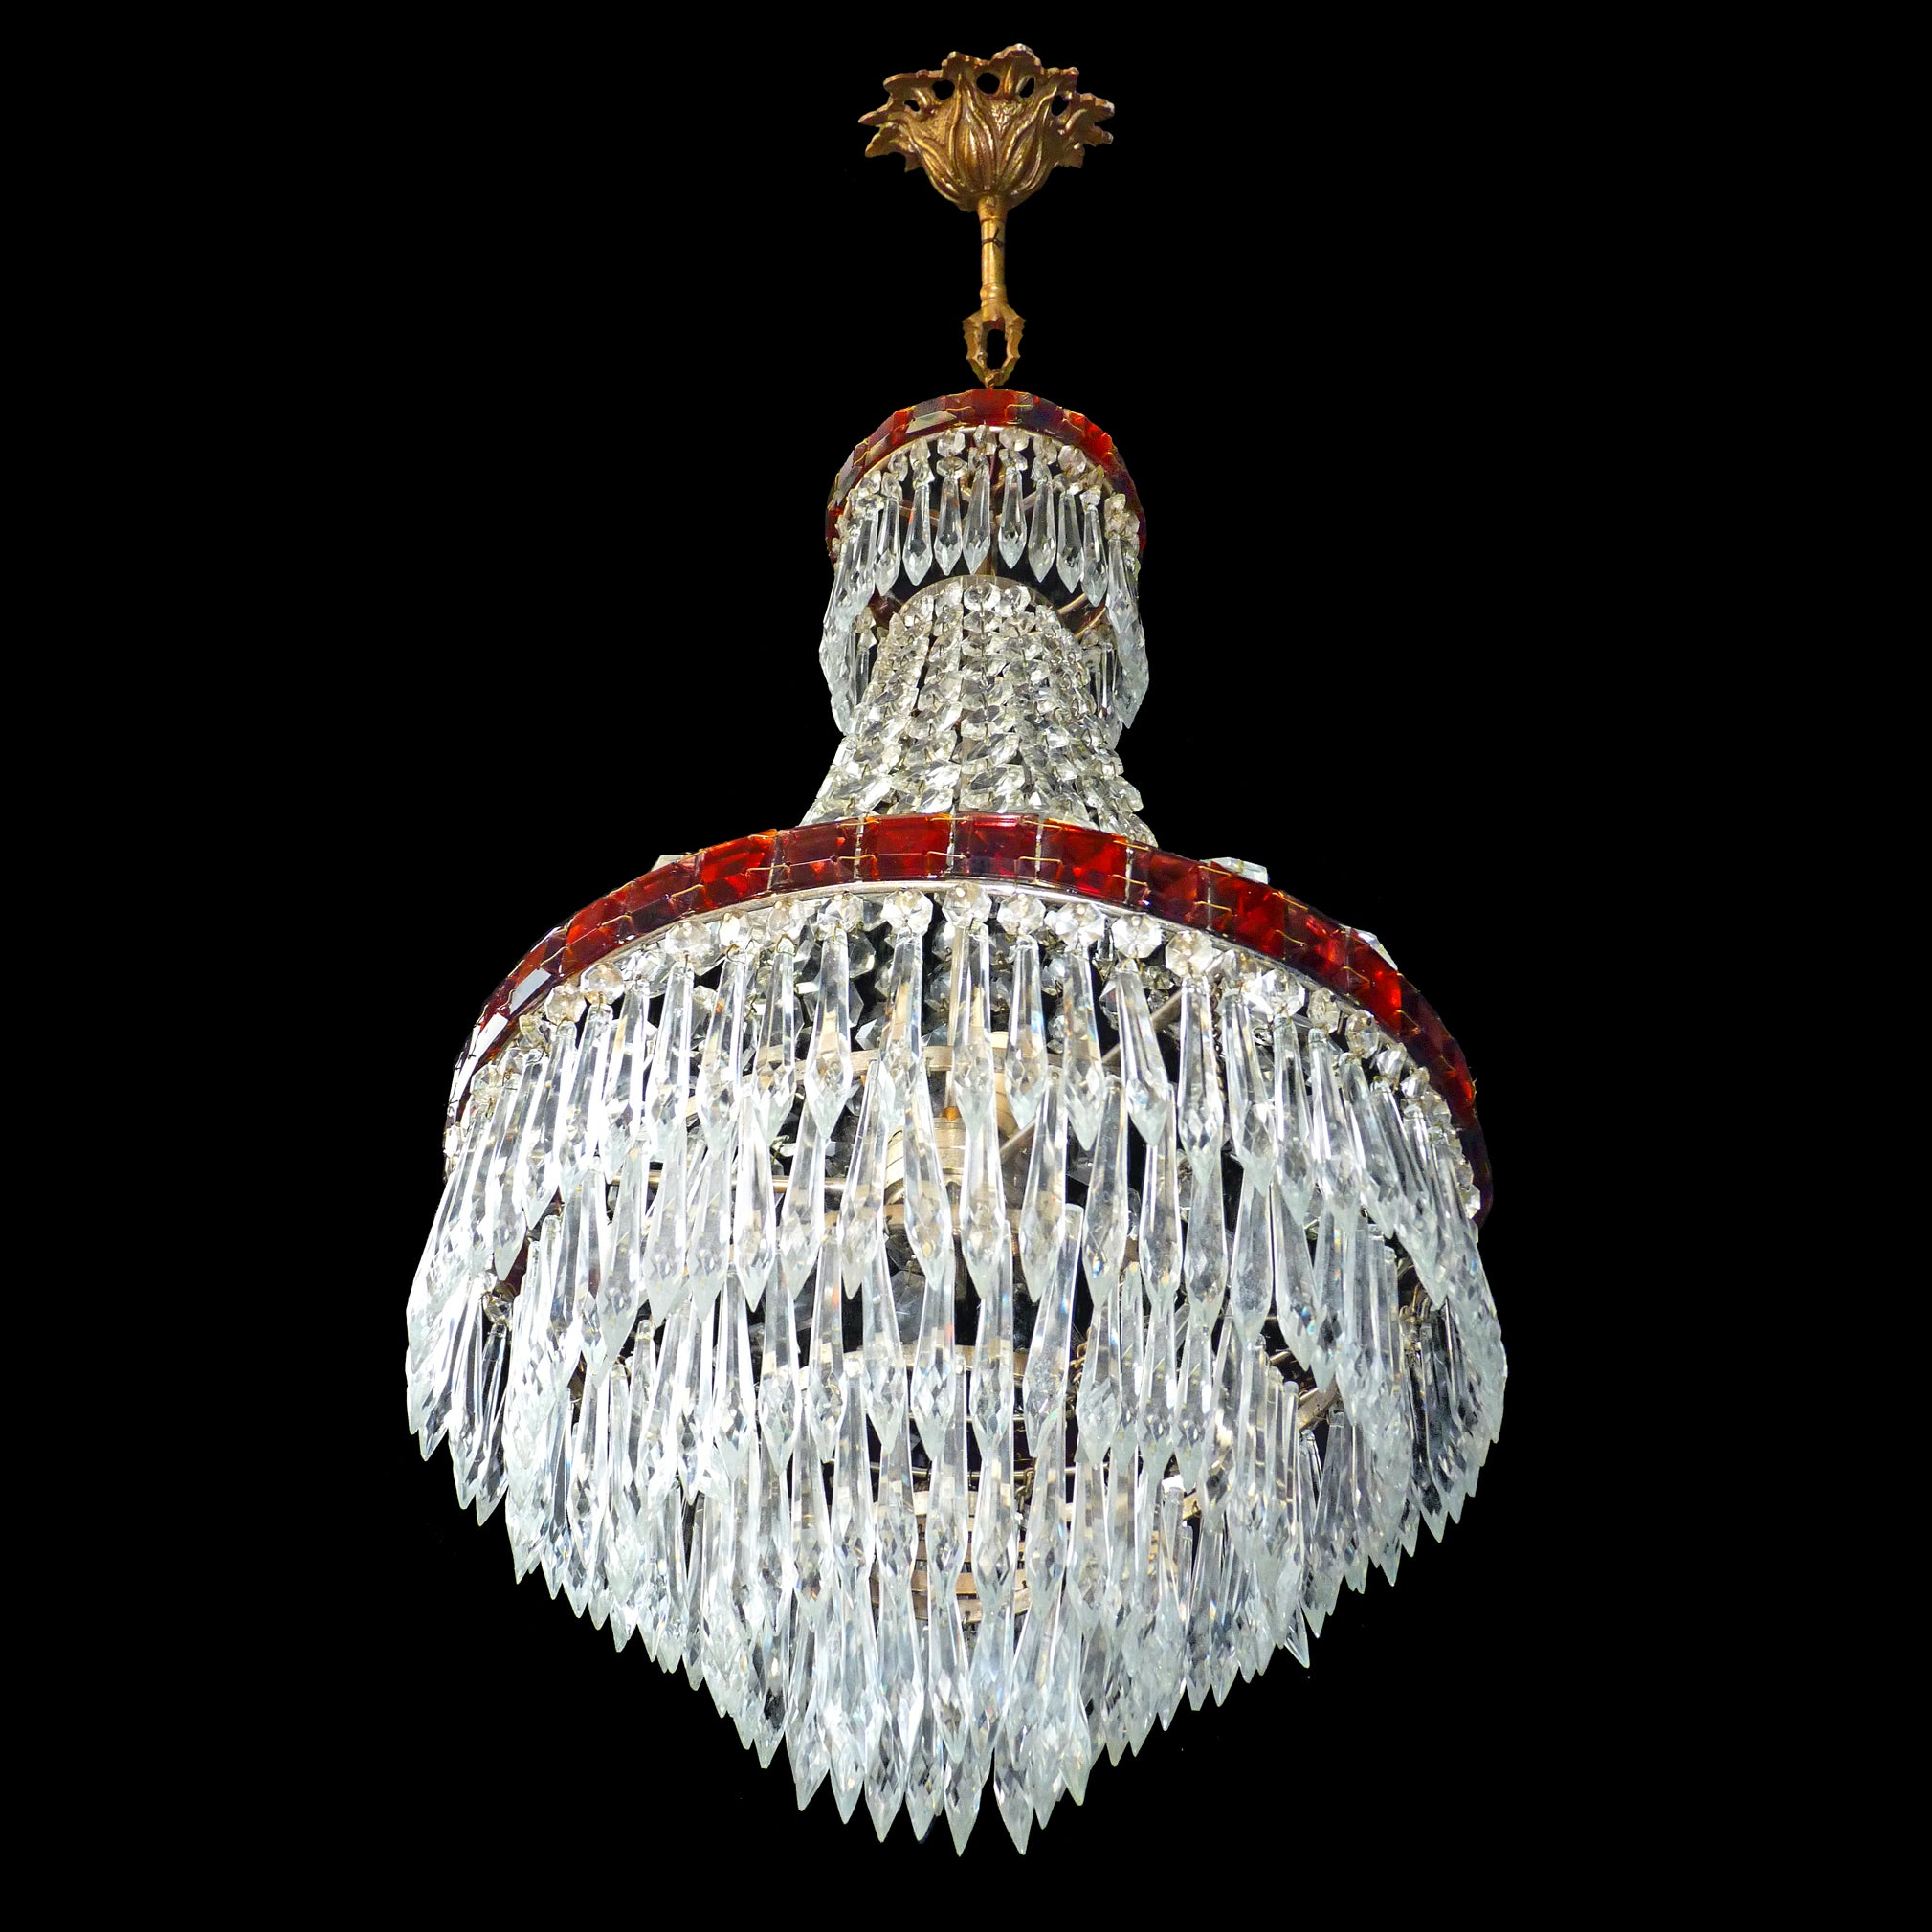 1940 french empire cascade wedding cake ruby red lead crystal 1940 french empire cascade wedding cake ruby red lead crystal chandelier for sale at 1stdibs arubaitofo Image collections